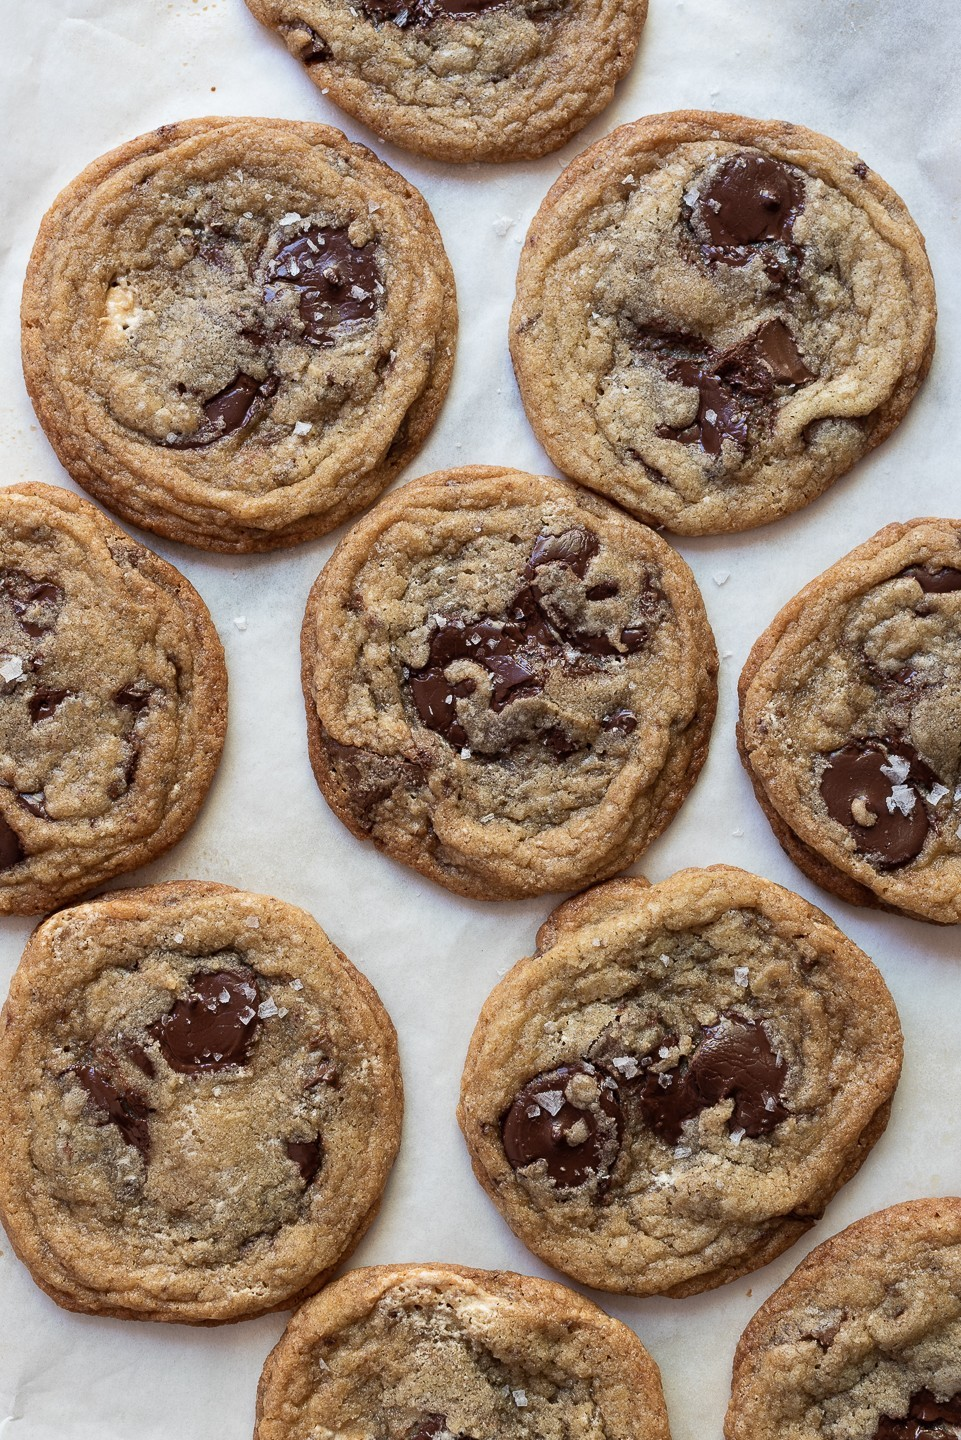 The best halva chocolate chip cookies | Bibbyskitchen @ 36